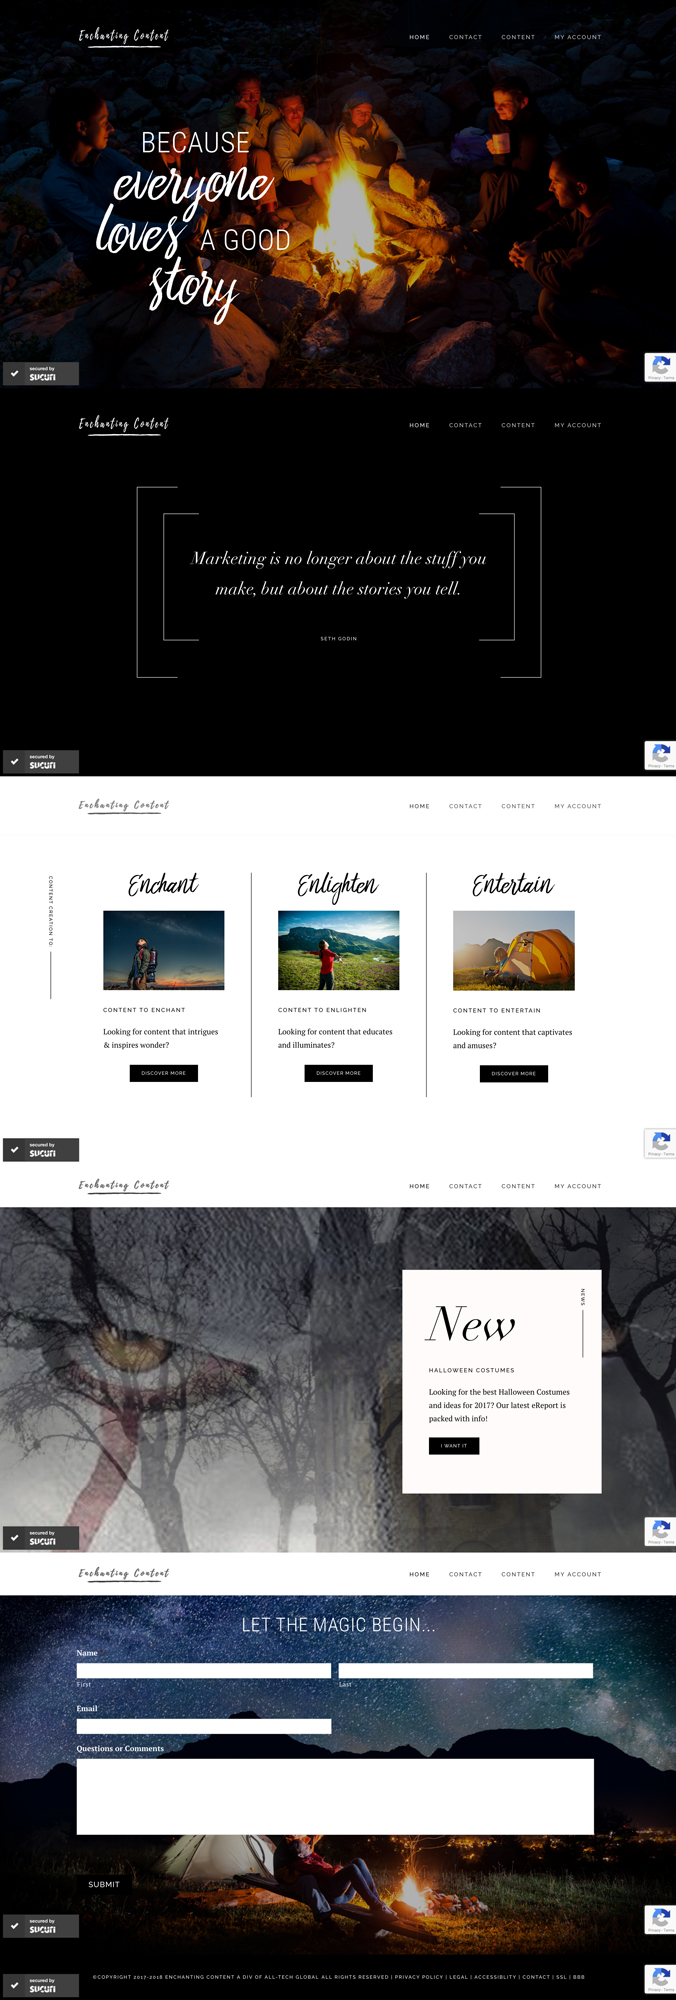 Enchanting Content Website Design